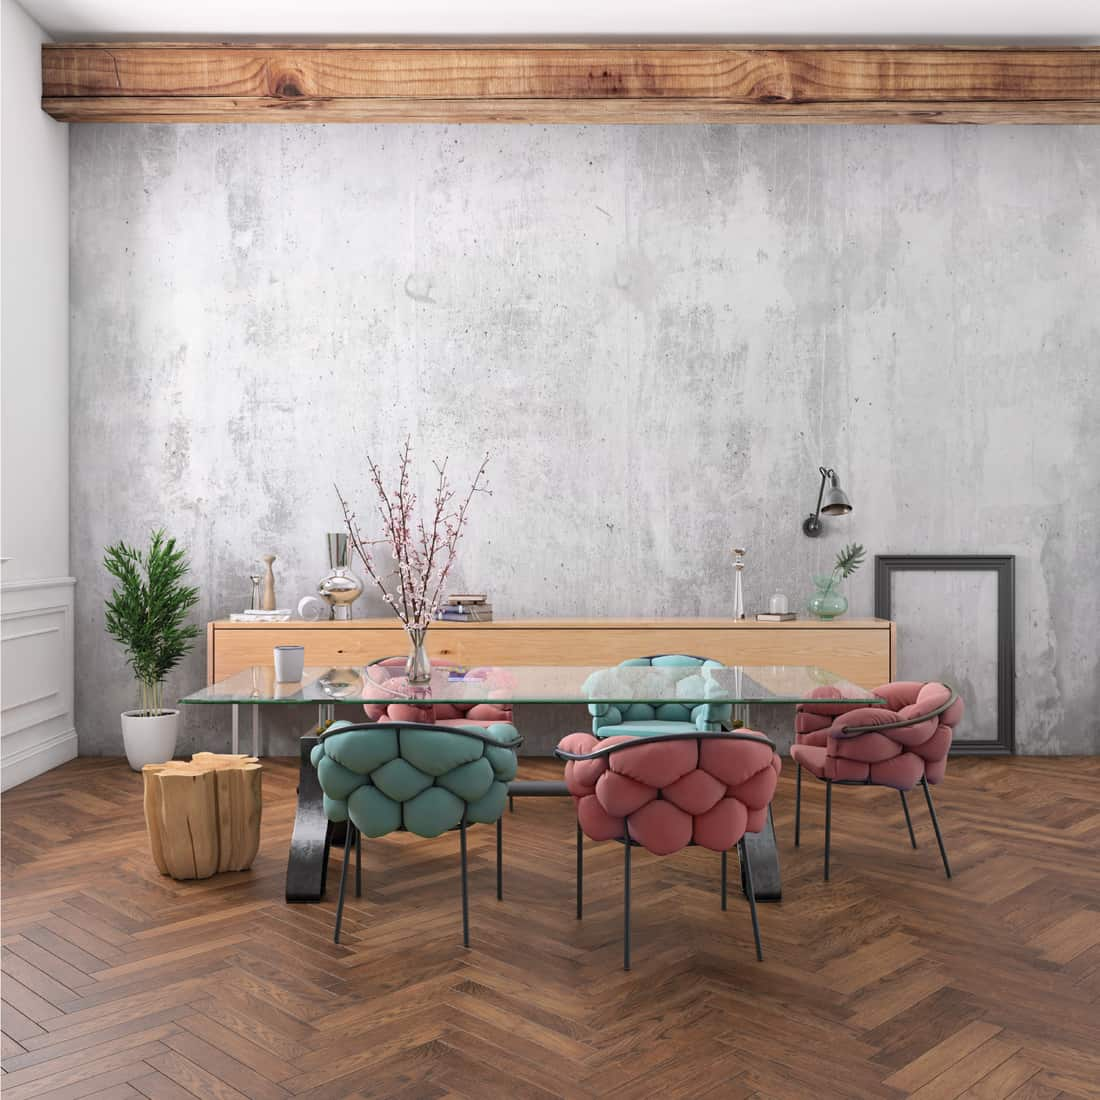 Nordic style office studio dining room interior with large glass table, neon and pastel colored chairs, gray concrete wall